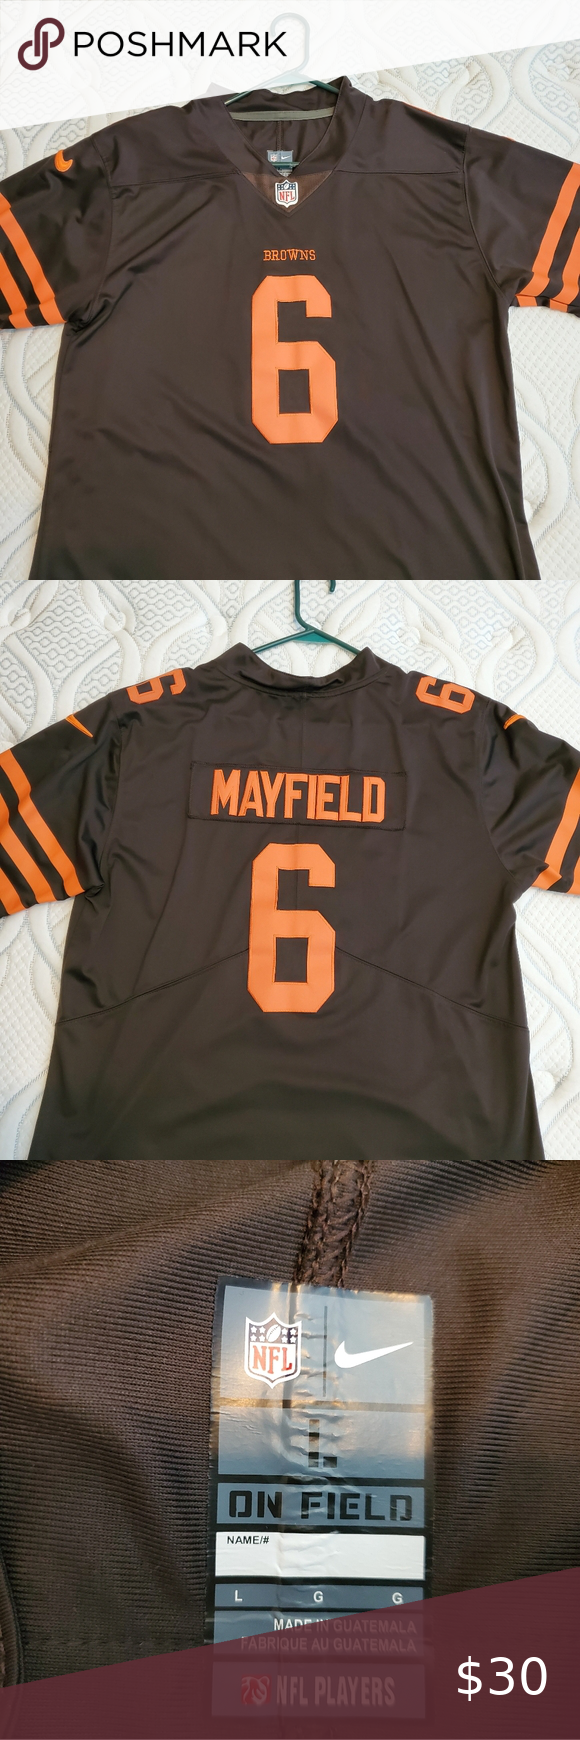 baker mayfield color rush jersey